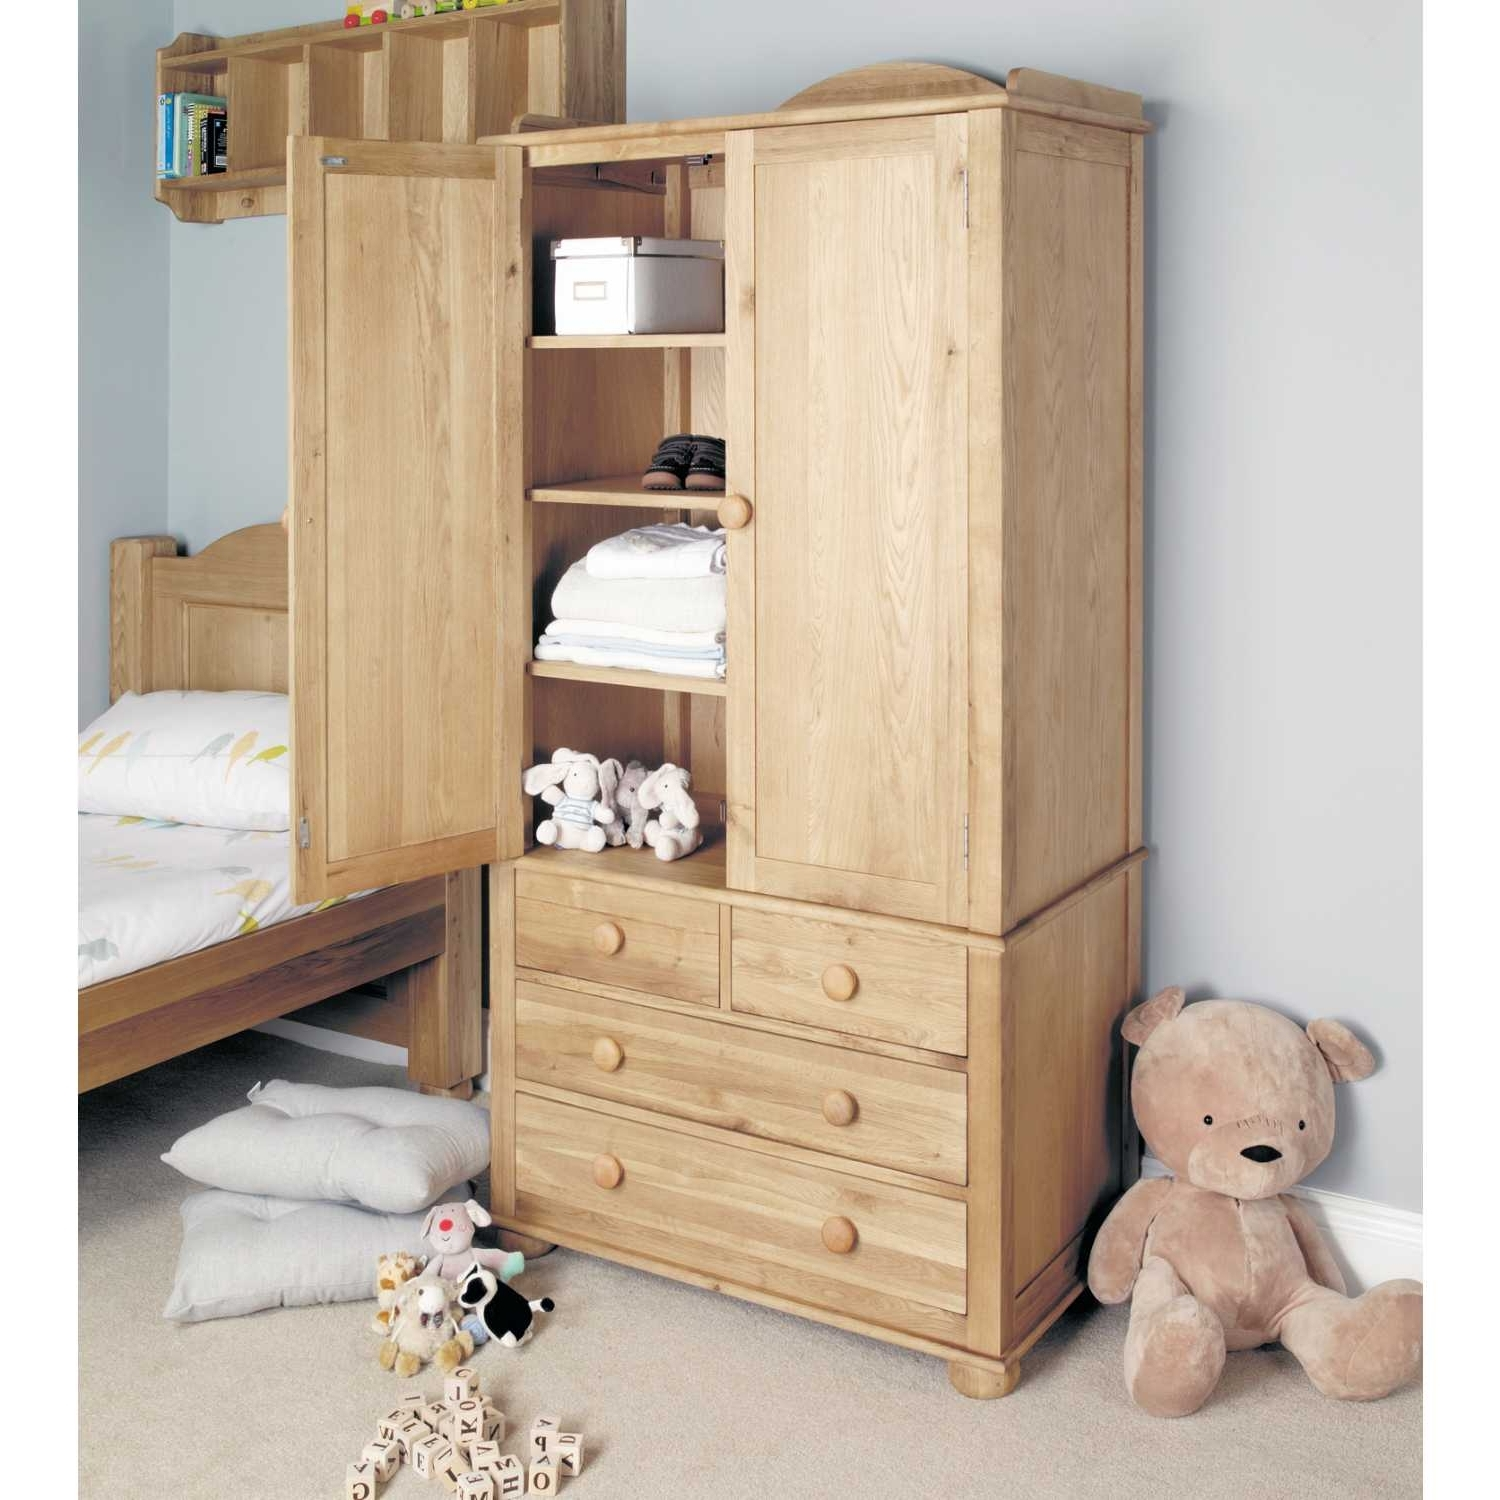 Wardrobe With Shelves And Drawers For 2018 Triple Wardrobe With Shelves And Drawers • Drawer Ideas (View 12 of 15)